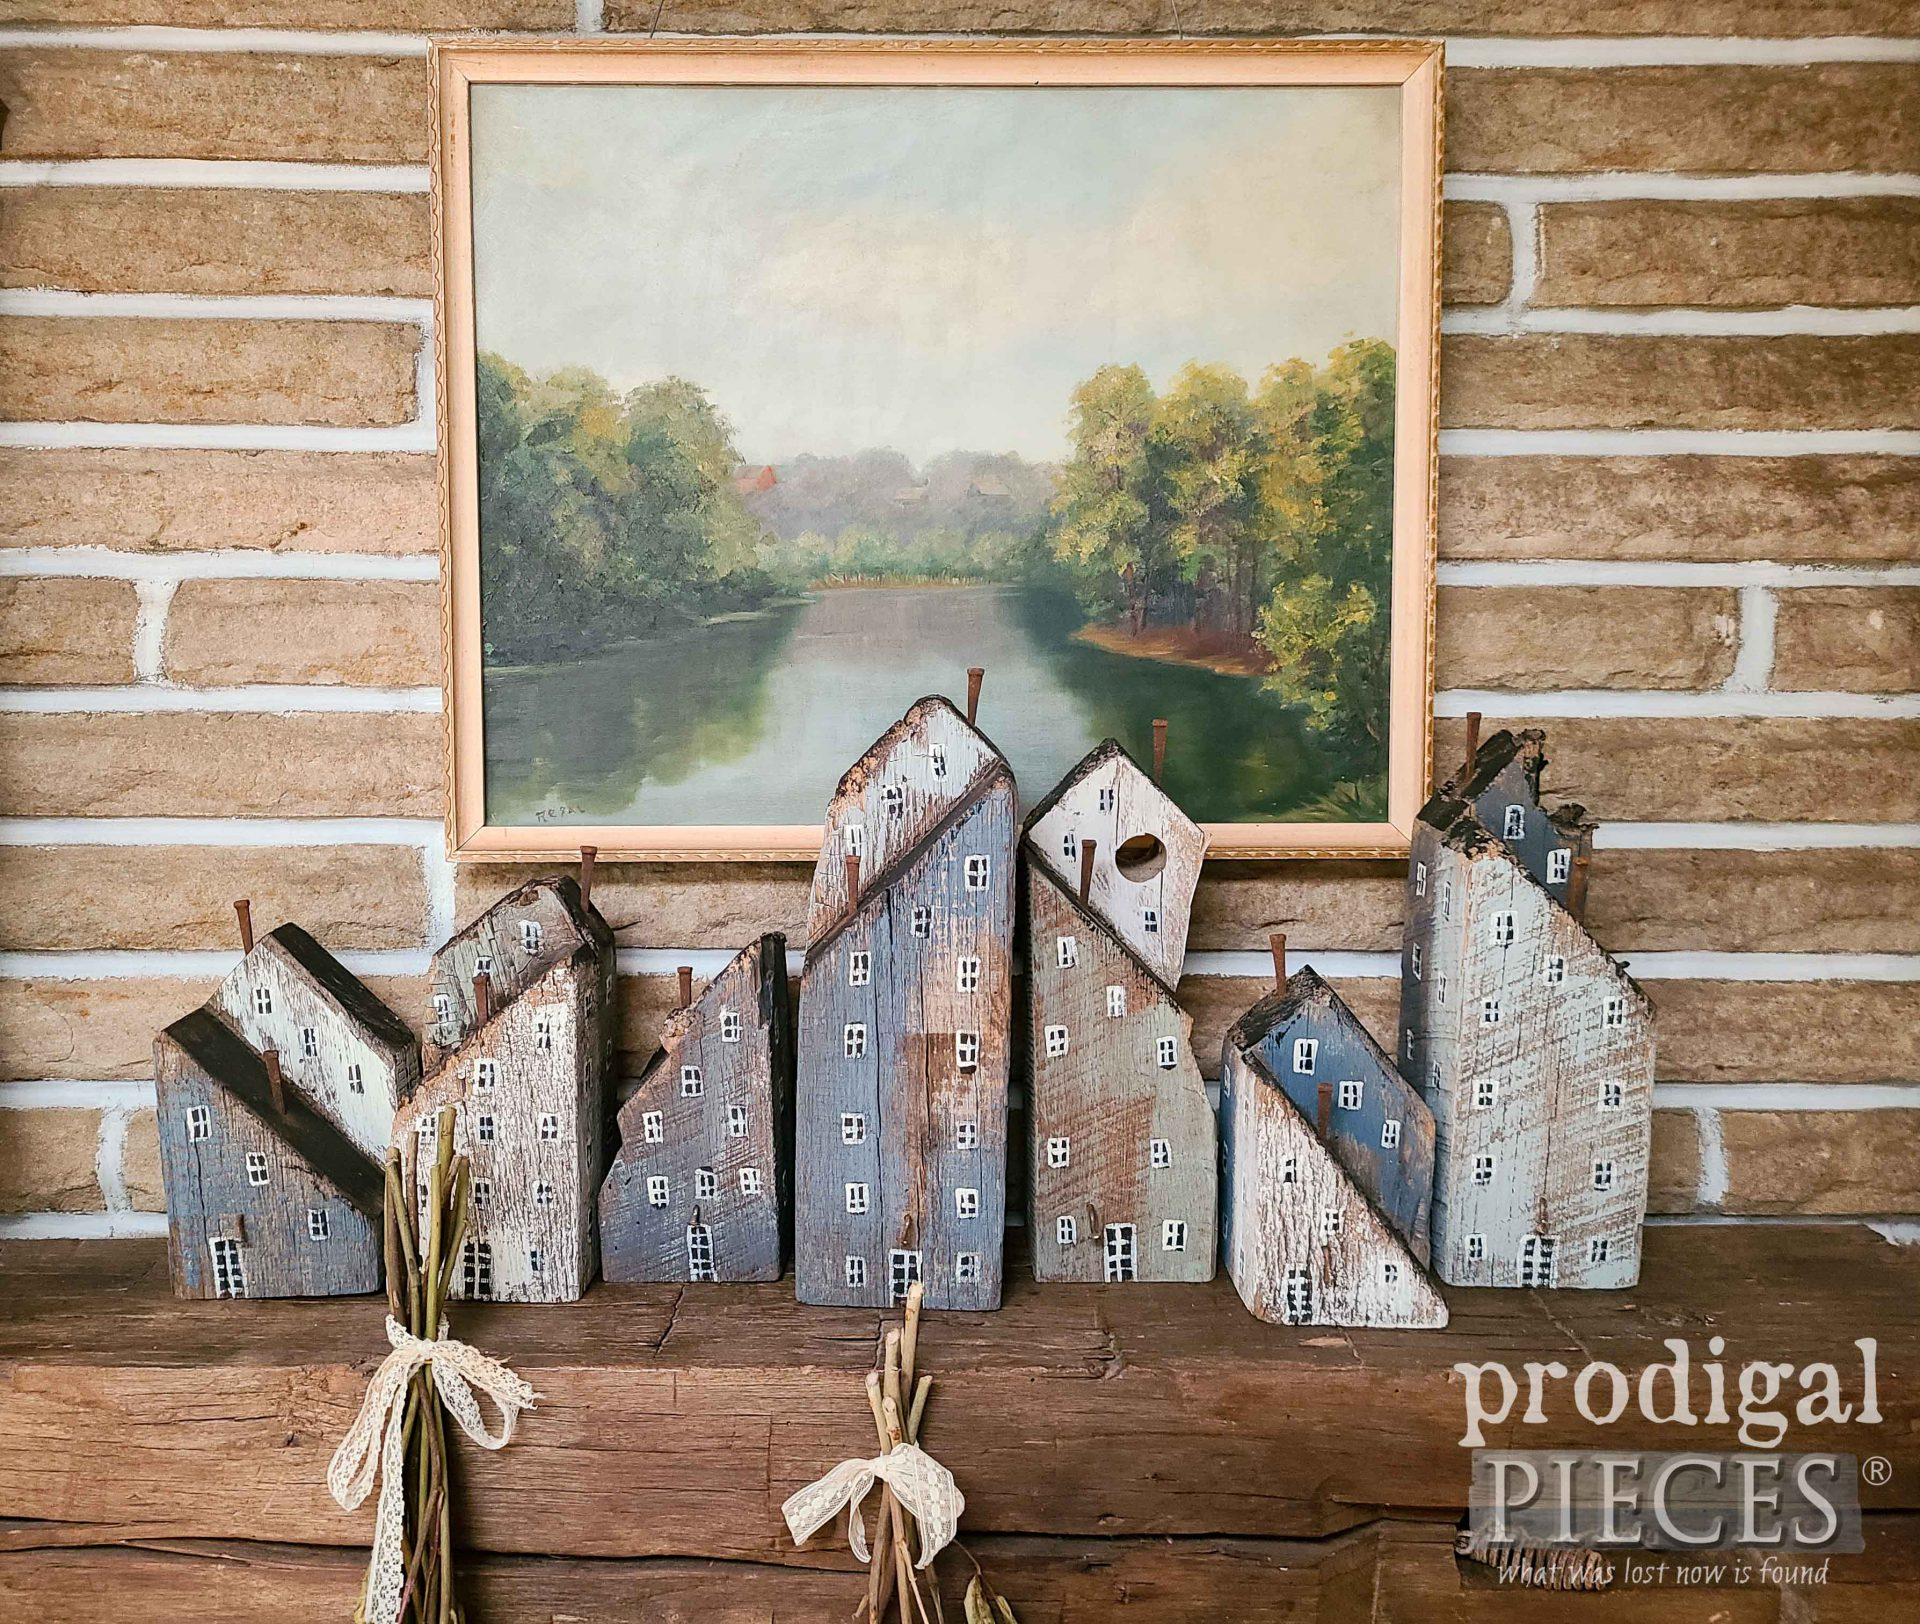 DIY Rustic Reclaimed Wood Houses Made from Barn Beam Scraps by Larissa of Prodigal Pieces | prodigalpieces.com #prodigalpieces #reclaimed #home #diy #farmhouse